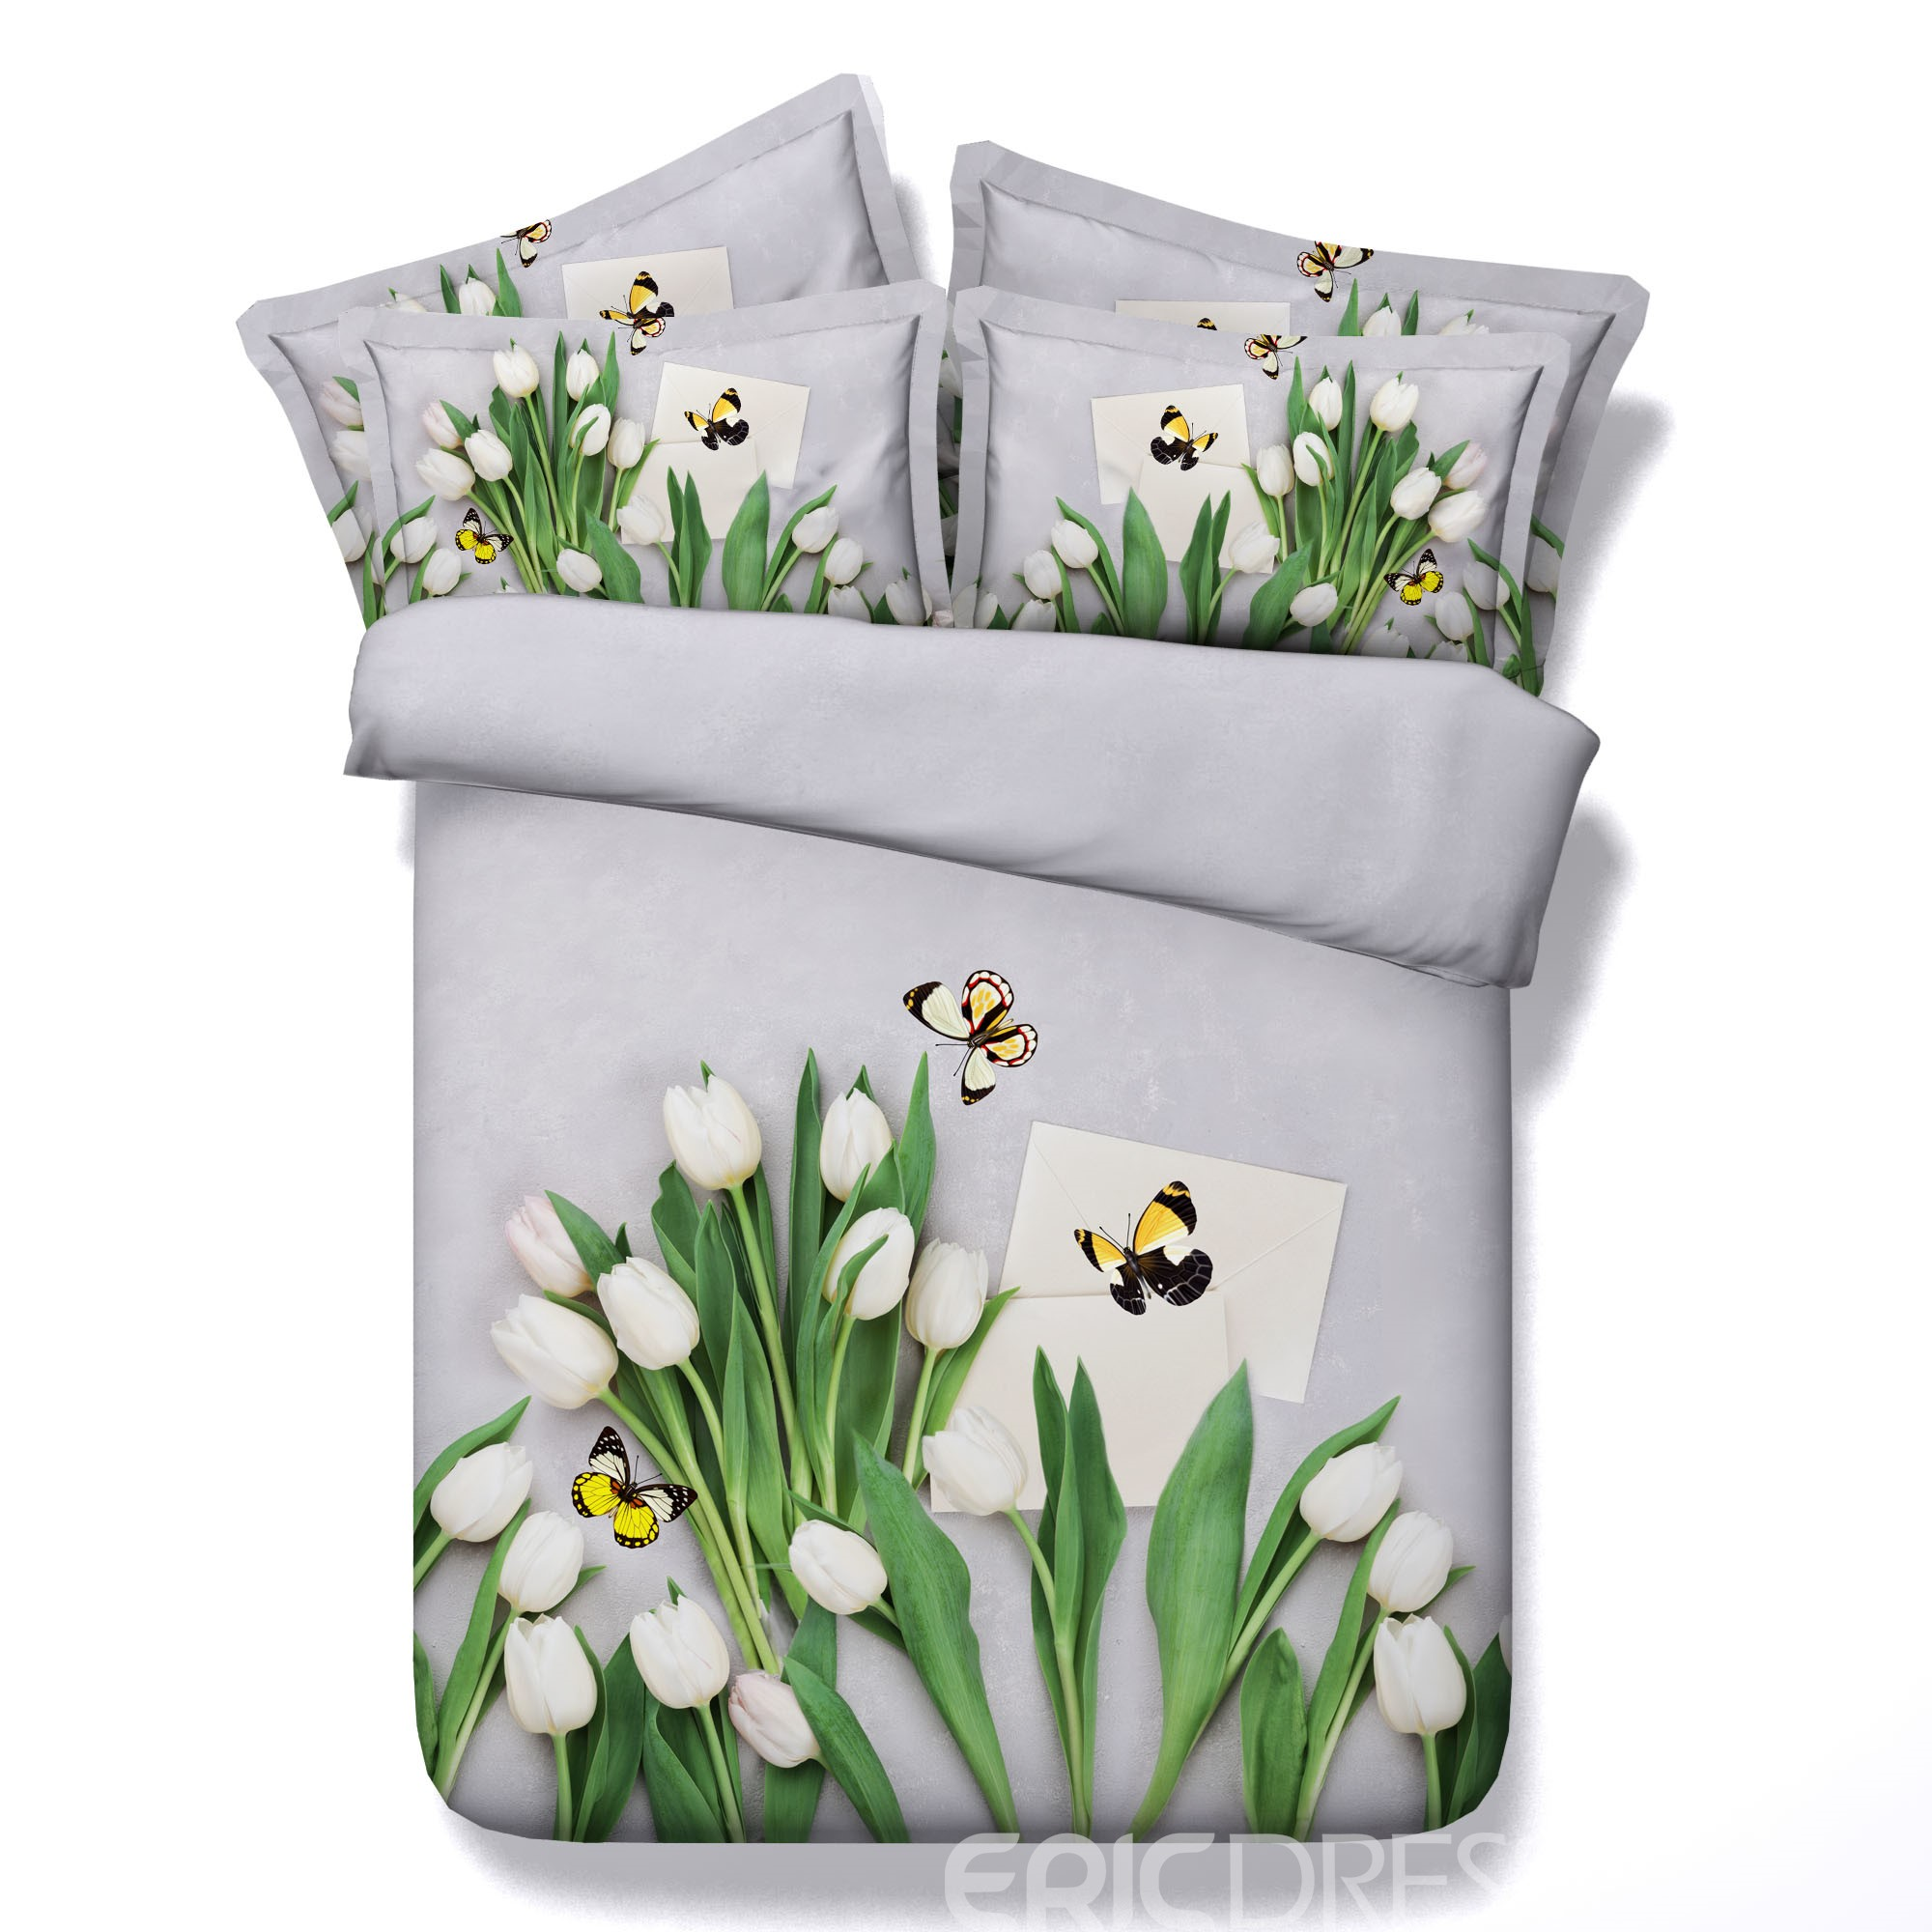 Vivilinen 3D White Tulips and Butterfly Printed Cotton 4-Piece Bedding Sets/Duvet Covers